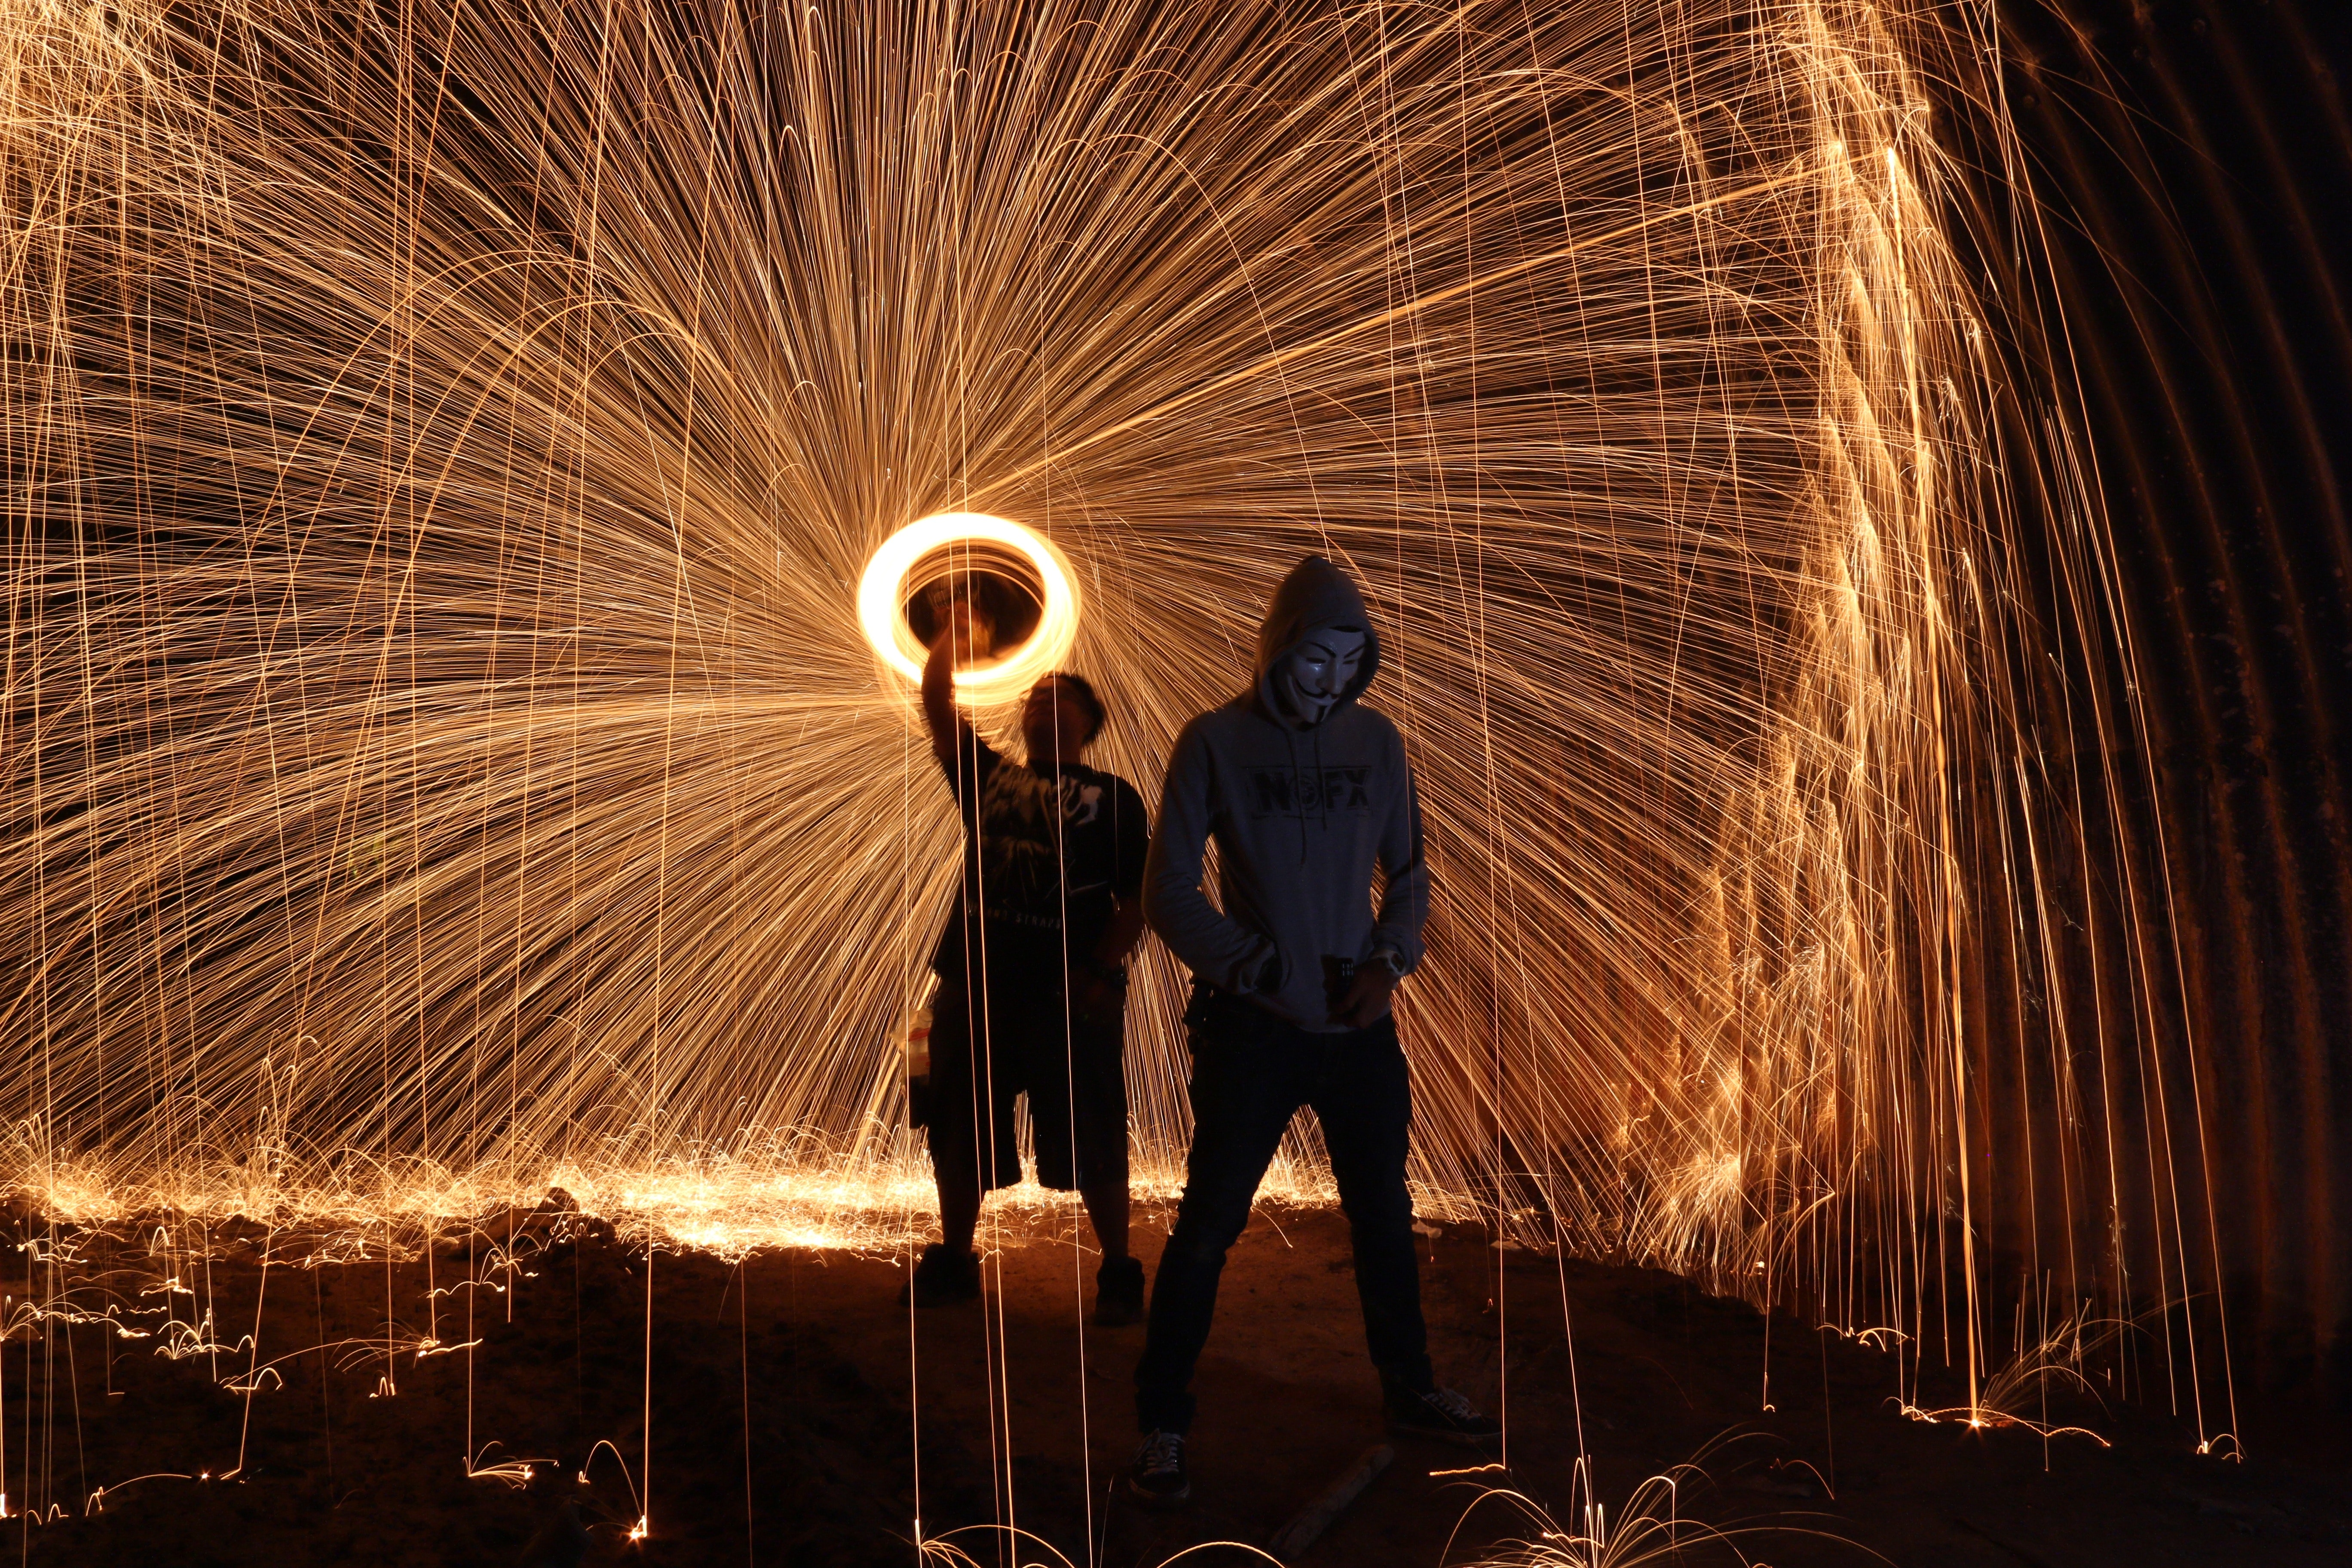 Steel Wool Photography Two Persons 183 Free Stock Photo